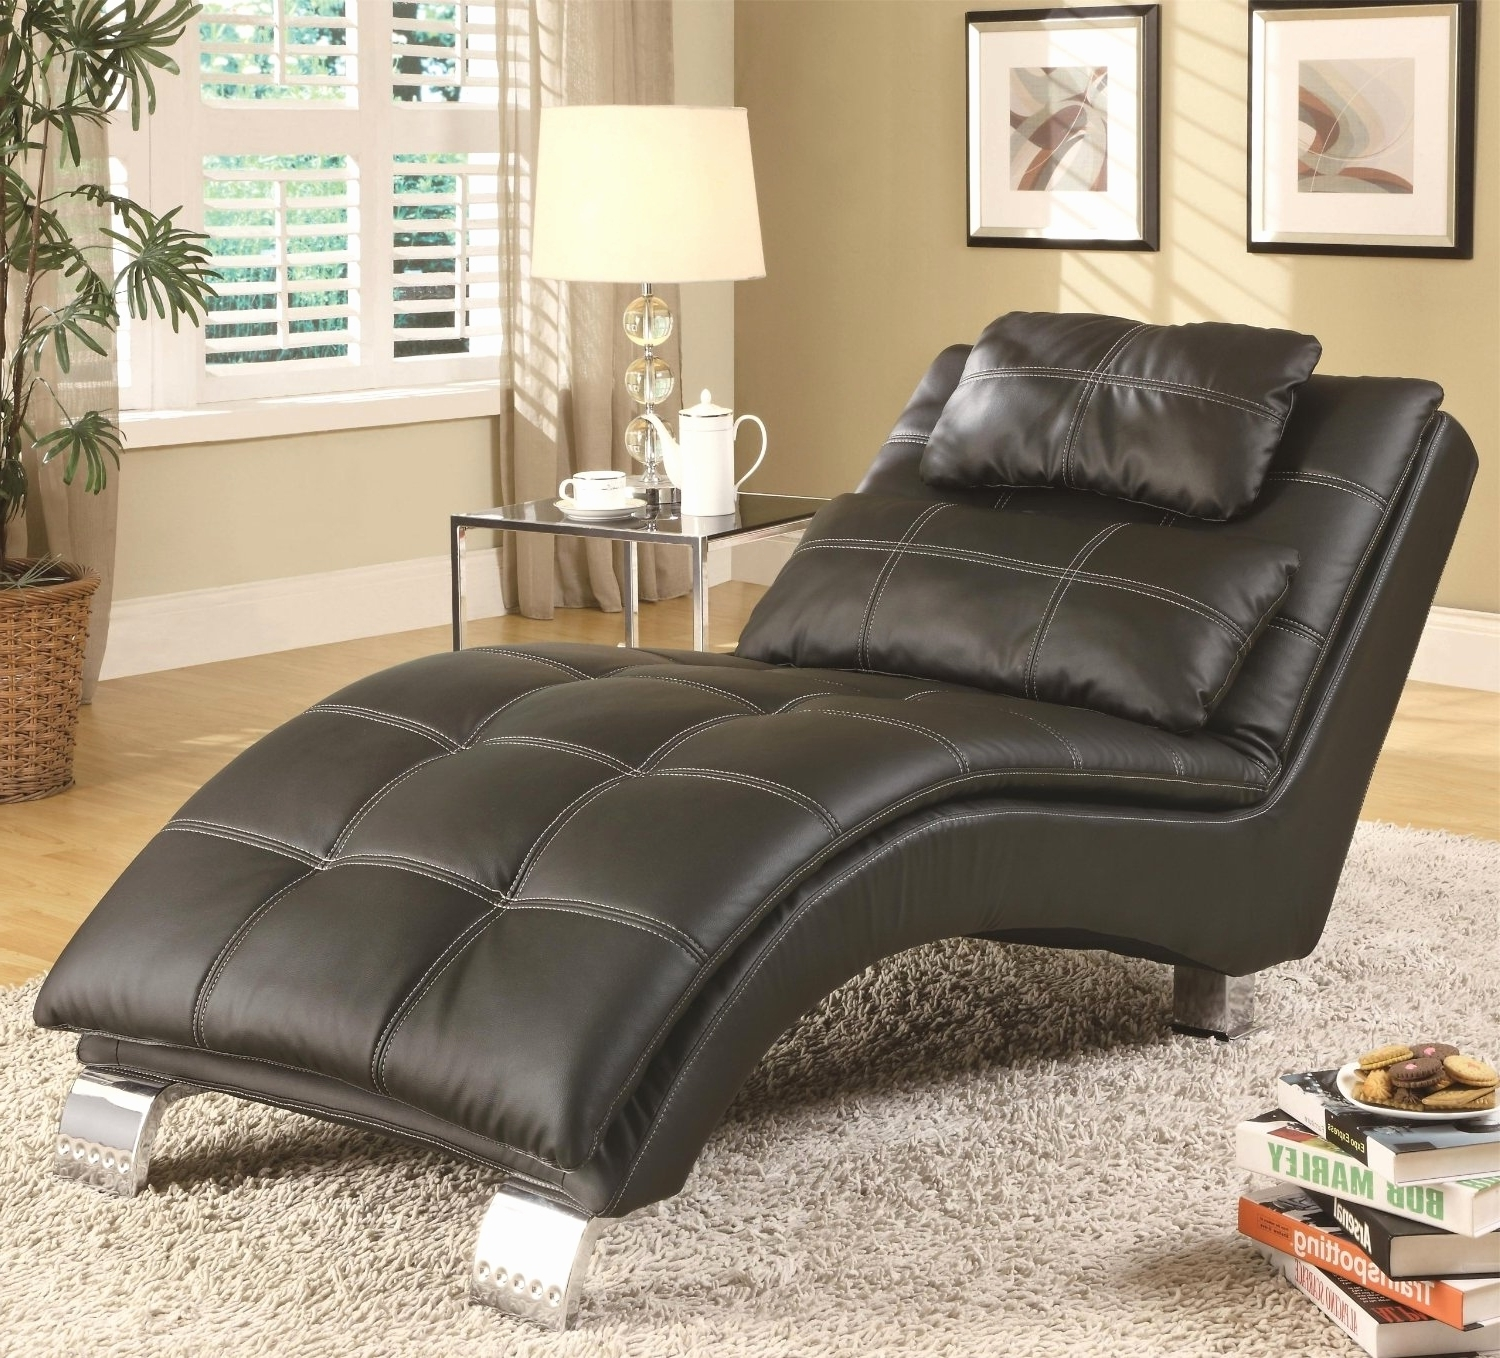 2017 Chaise Lounge Recliners Regarding 30 Fresh Costco Lounge Chairs Pictures (30 Photos) (View 7 of 15)